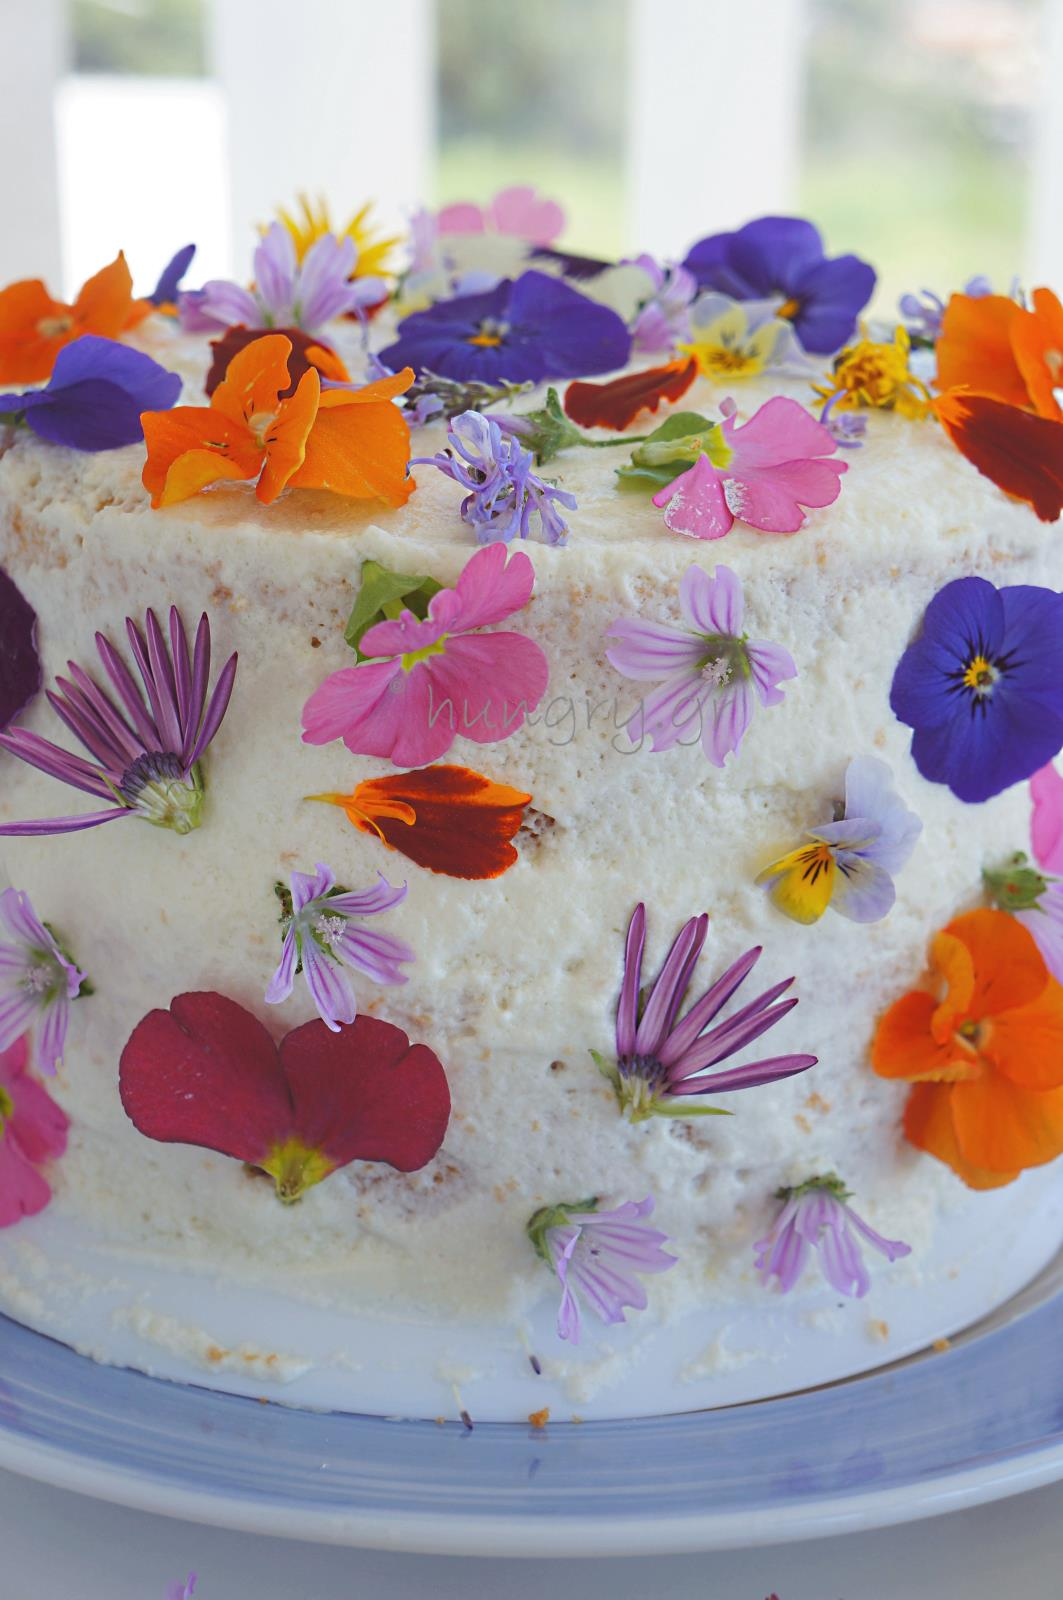 Kitchen Stories Spring Flower Birthday Cake